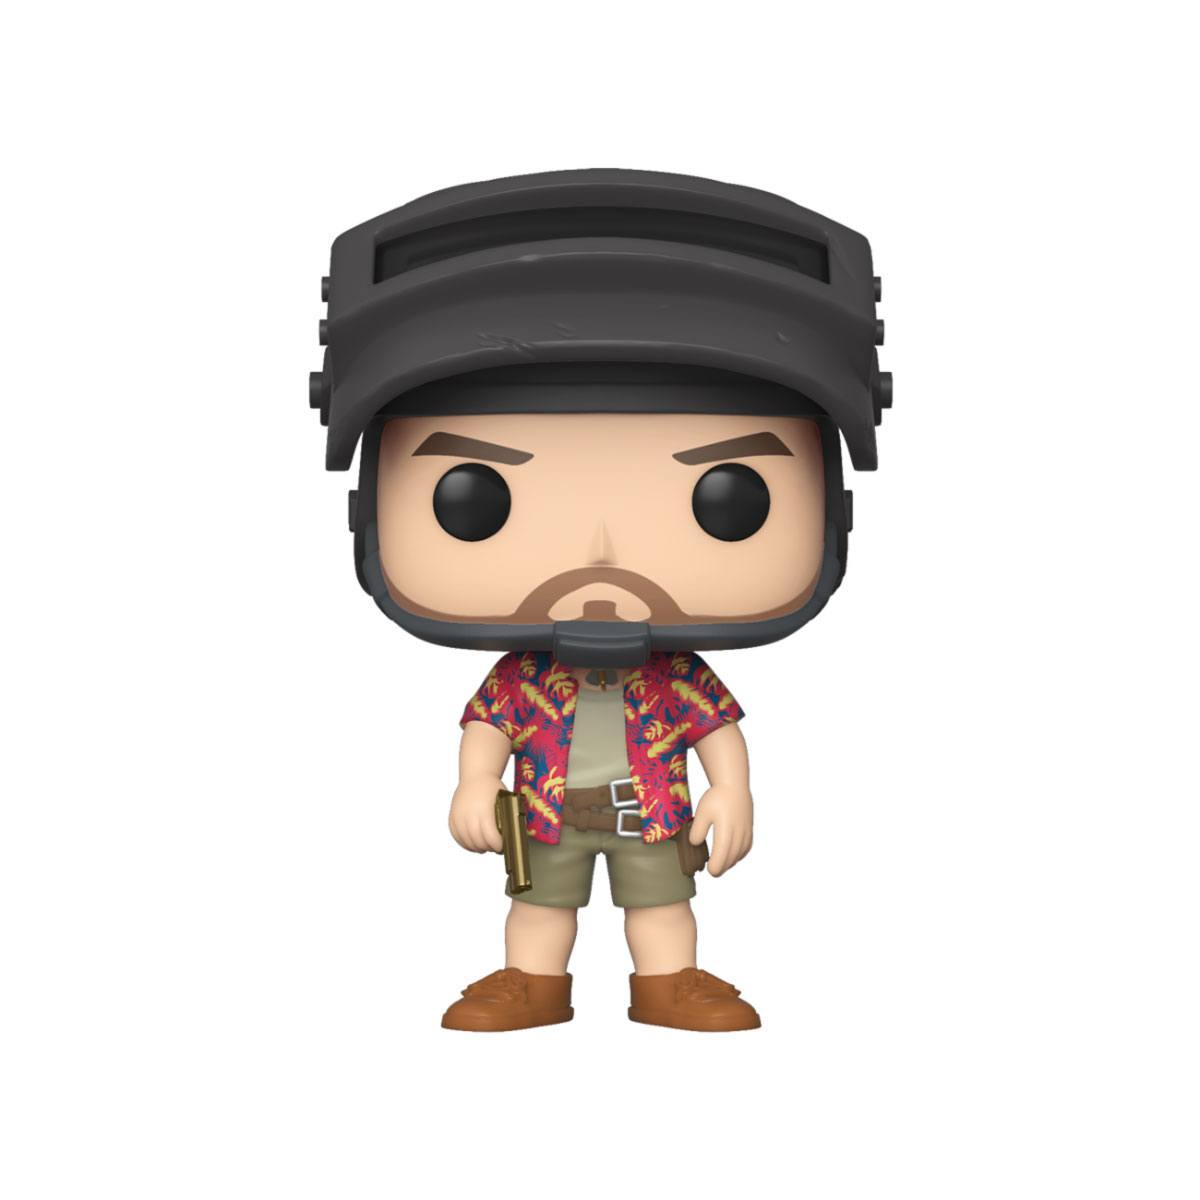 Playerunknown's Battlegrounds (PUBG) POP! Games Vinyl Figure Hawaiian Shirt Guy 9 cm